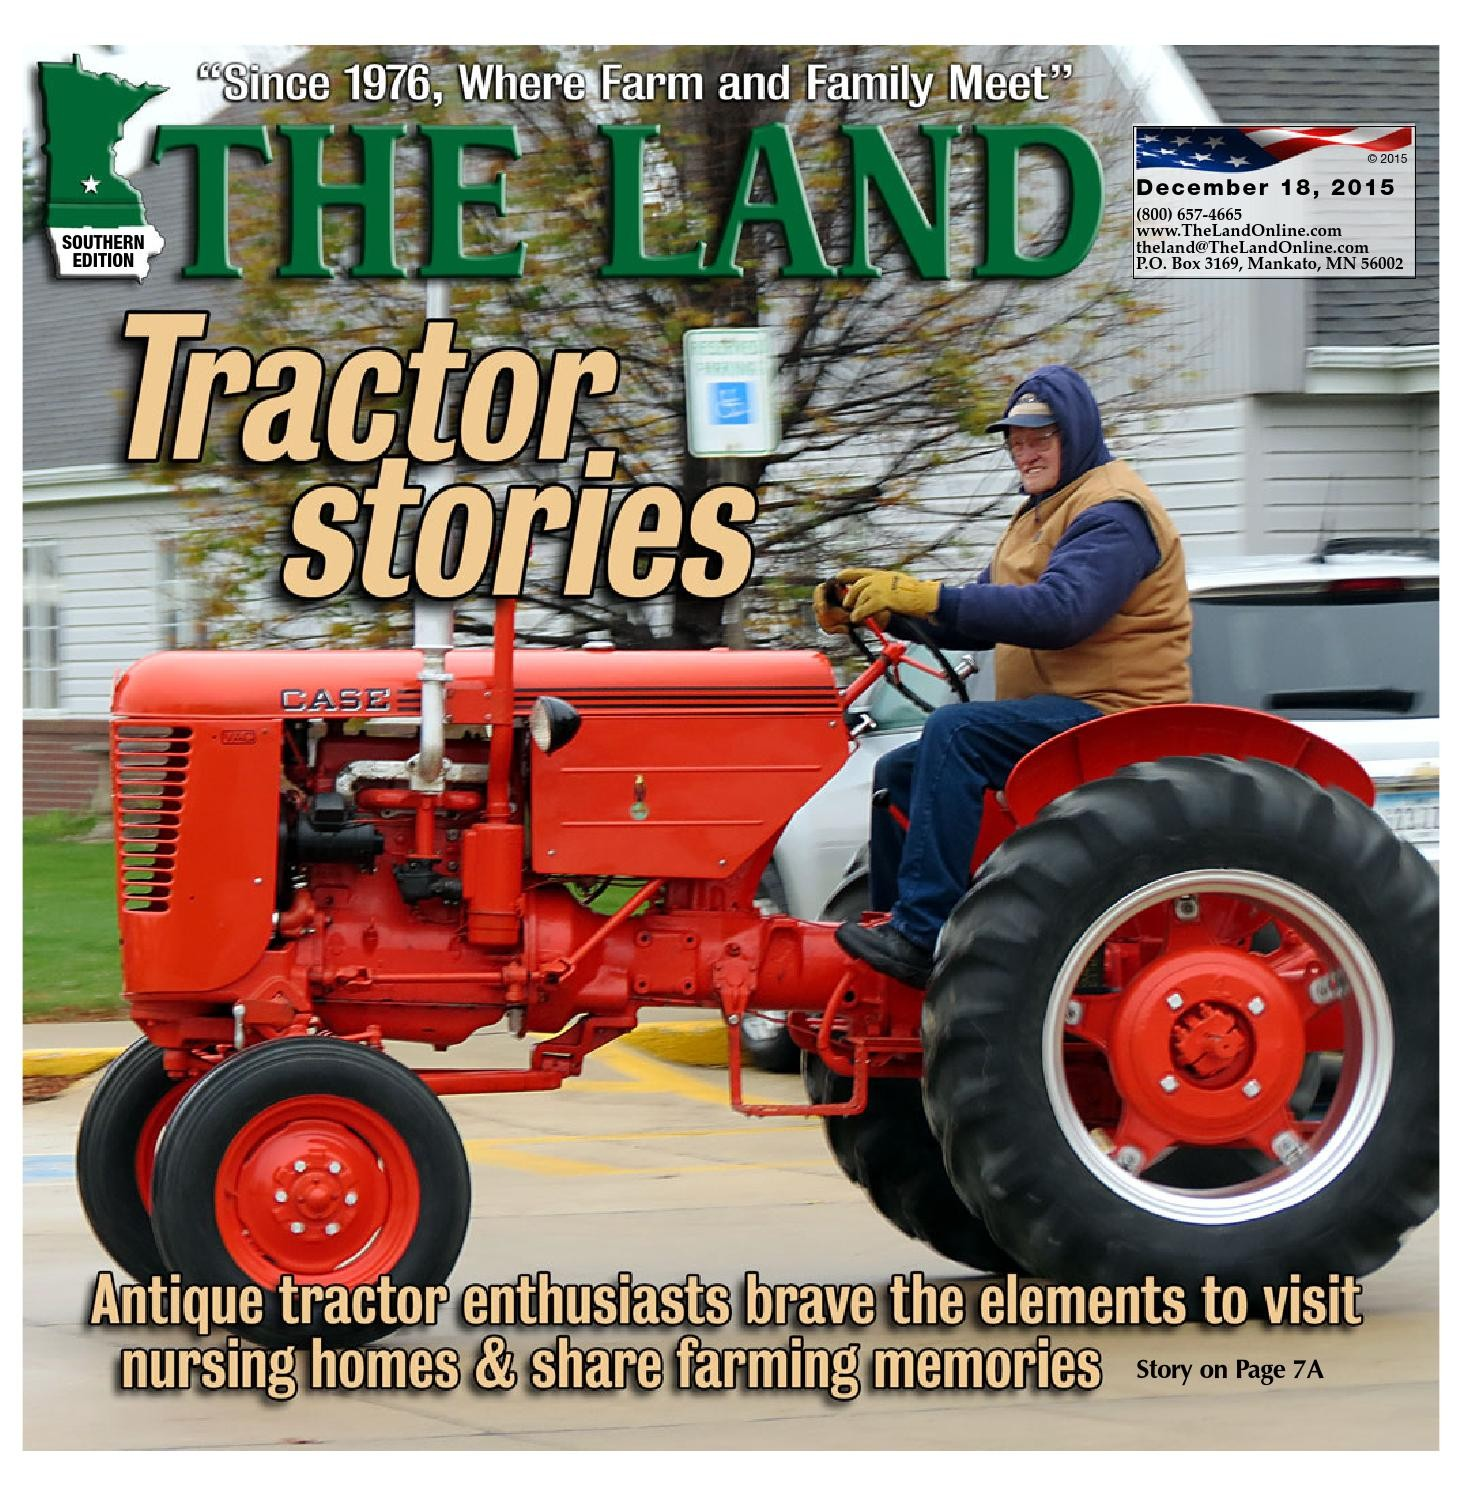 Wiring Diagram for 1970 Jd 4020 the Land Dec 18 2015 southern Edition by the Land issuu Of Wiring Diagram for 1970 Jd 4020